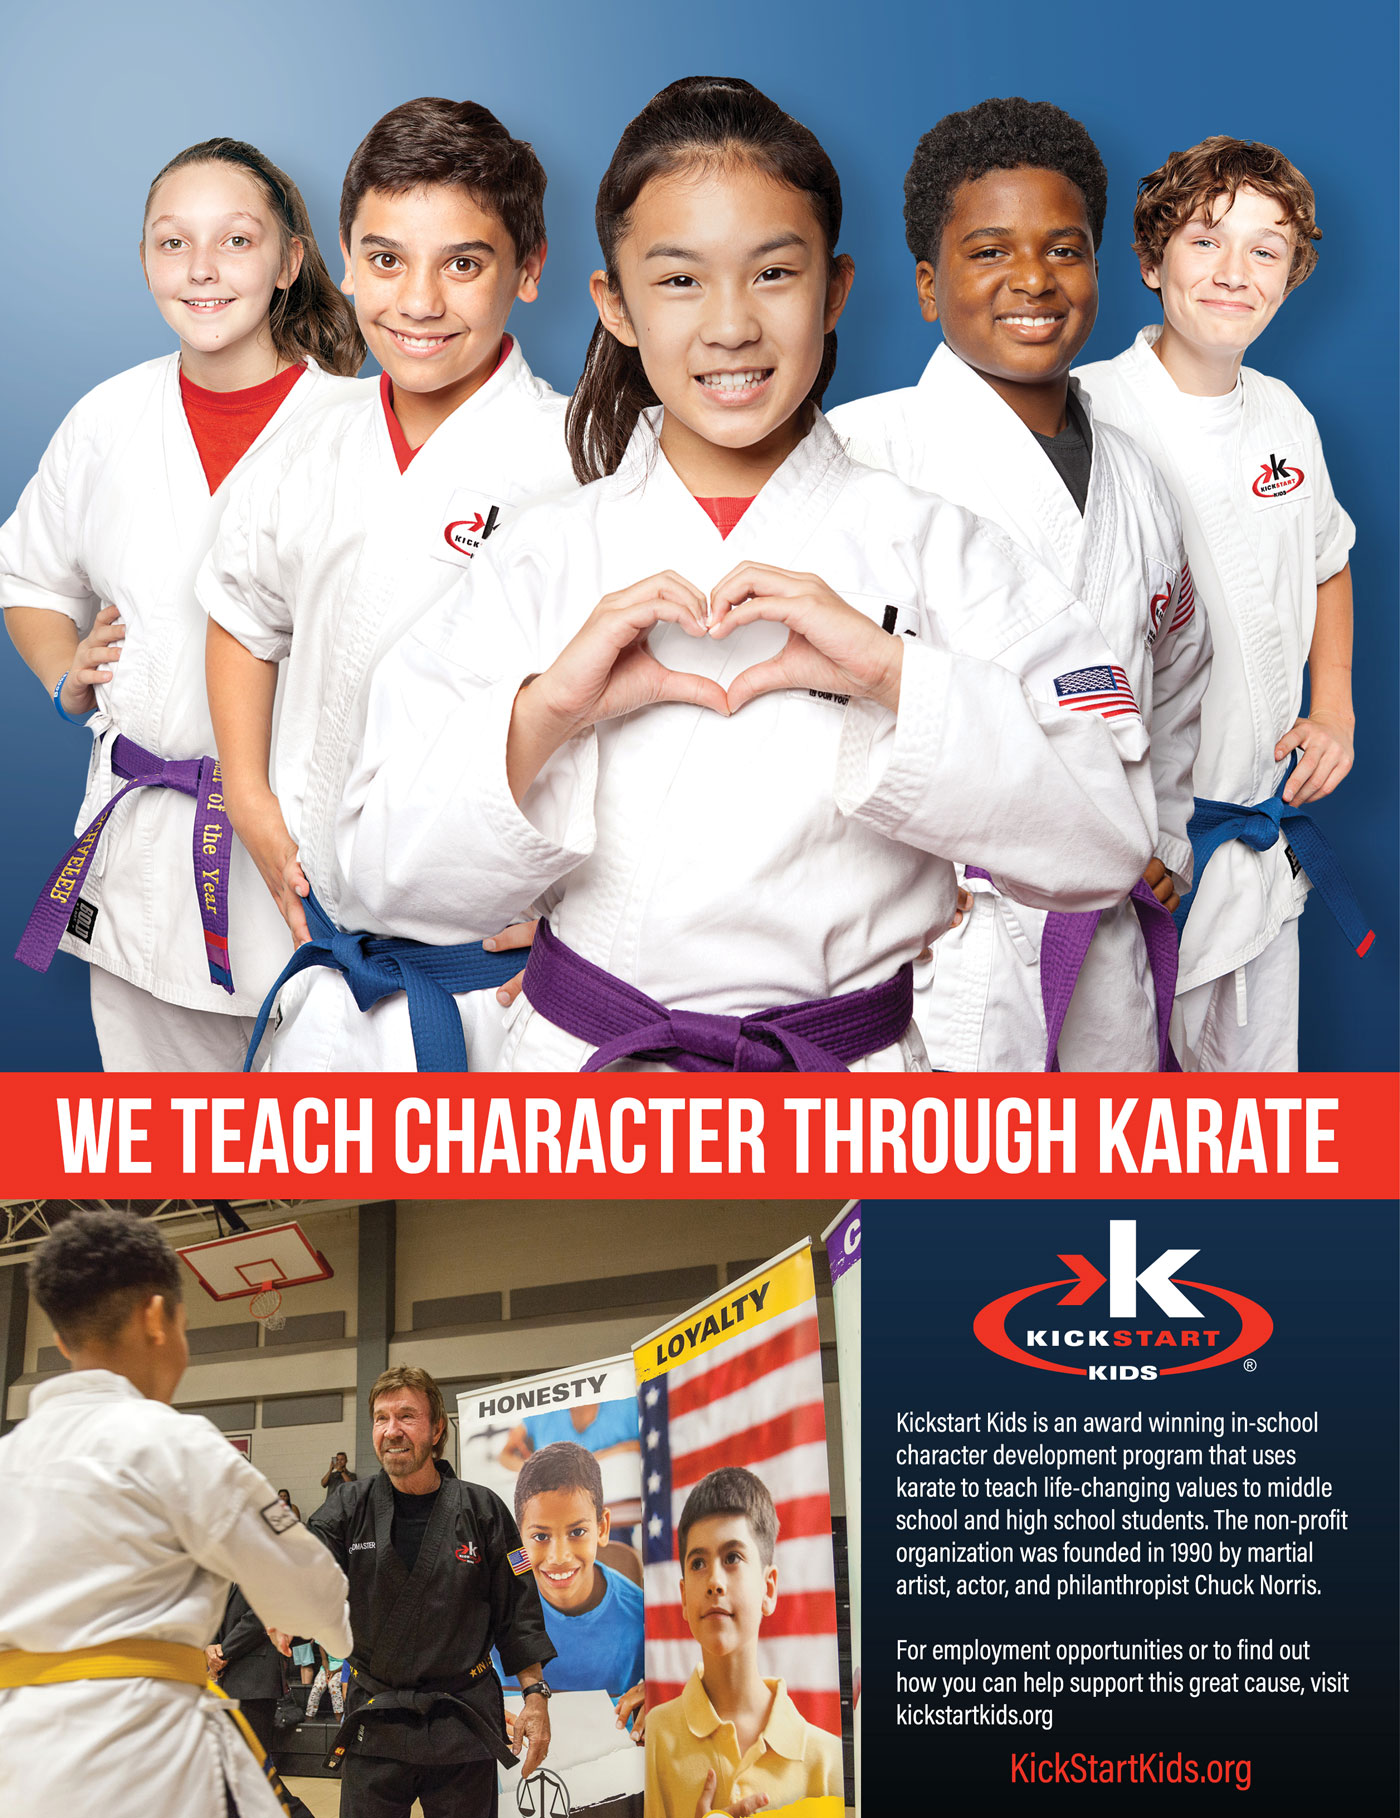 Kick Start Kids founded by Chuck Norris